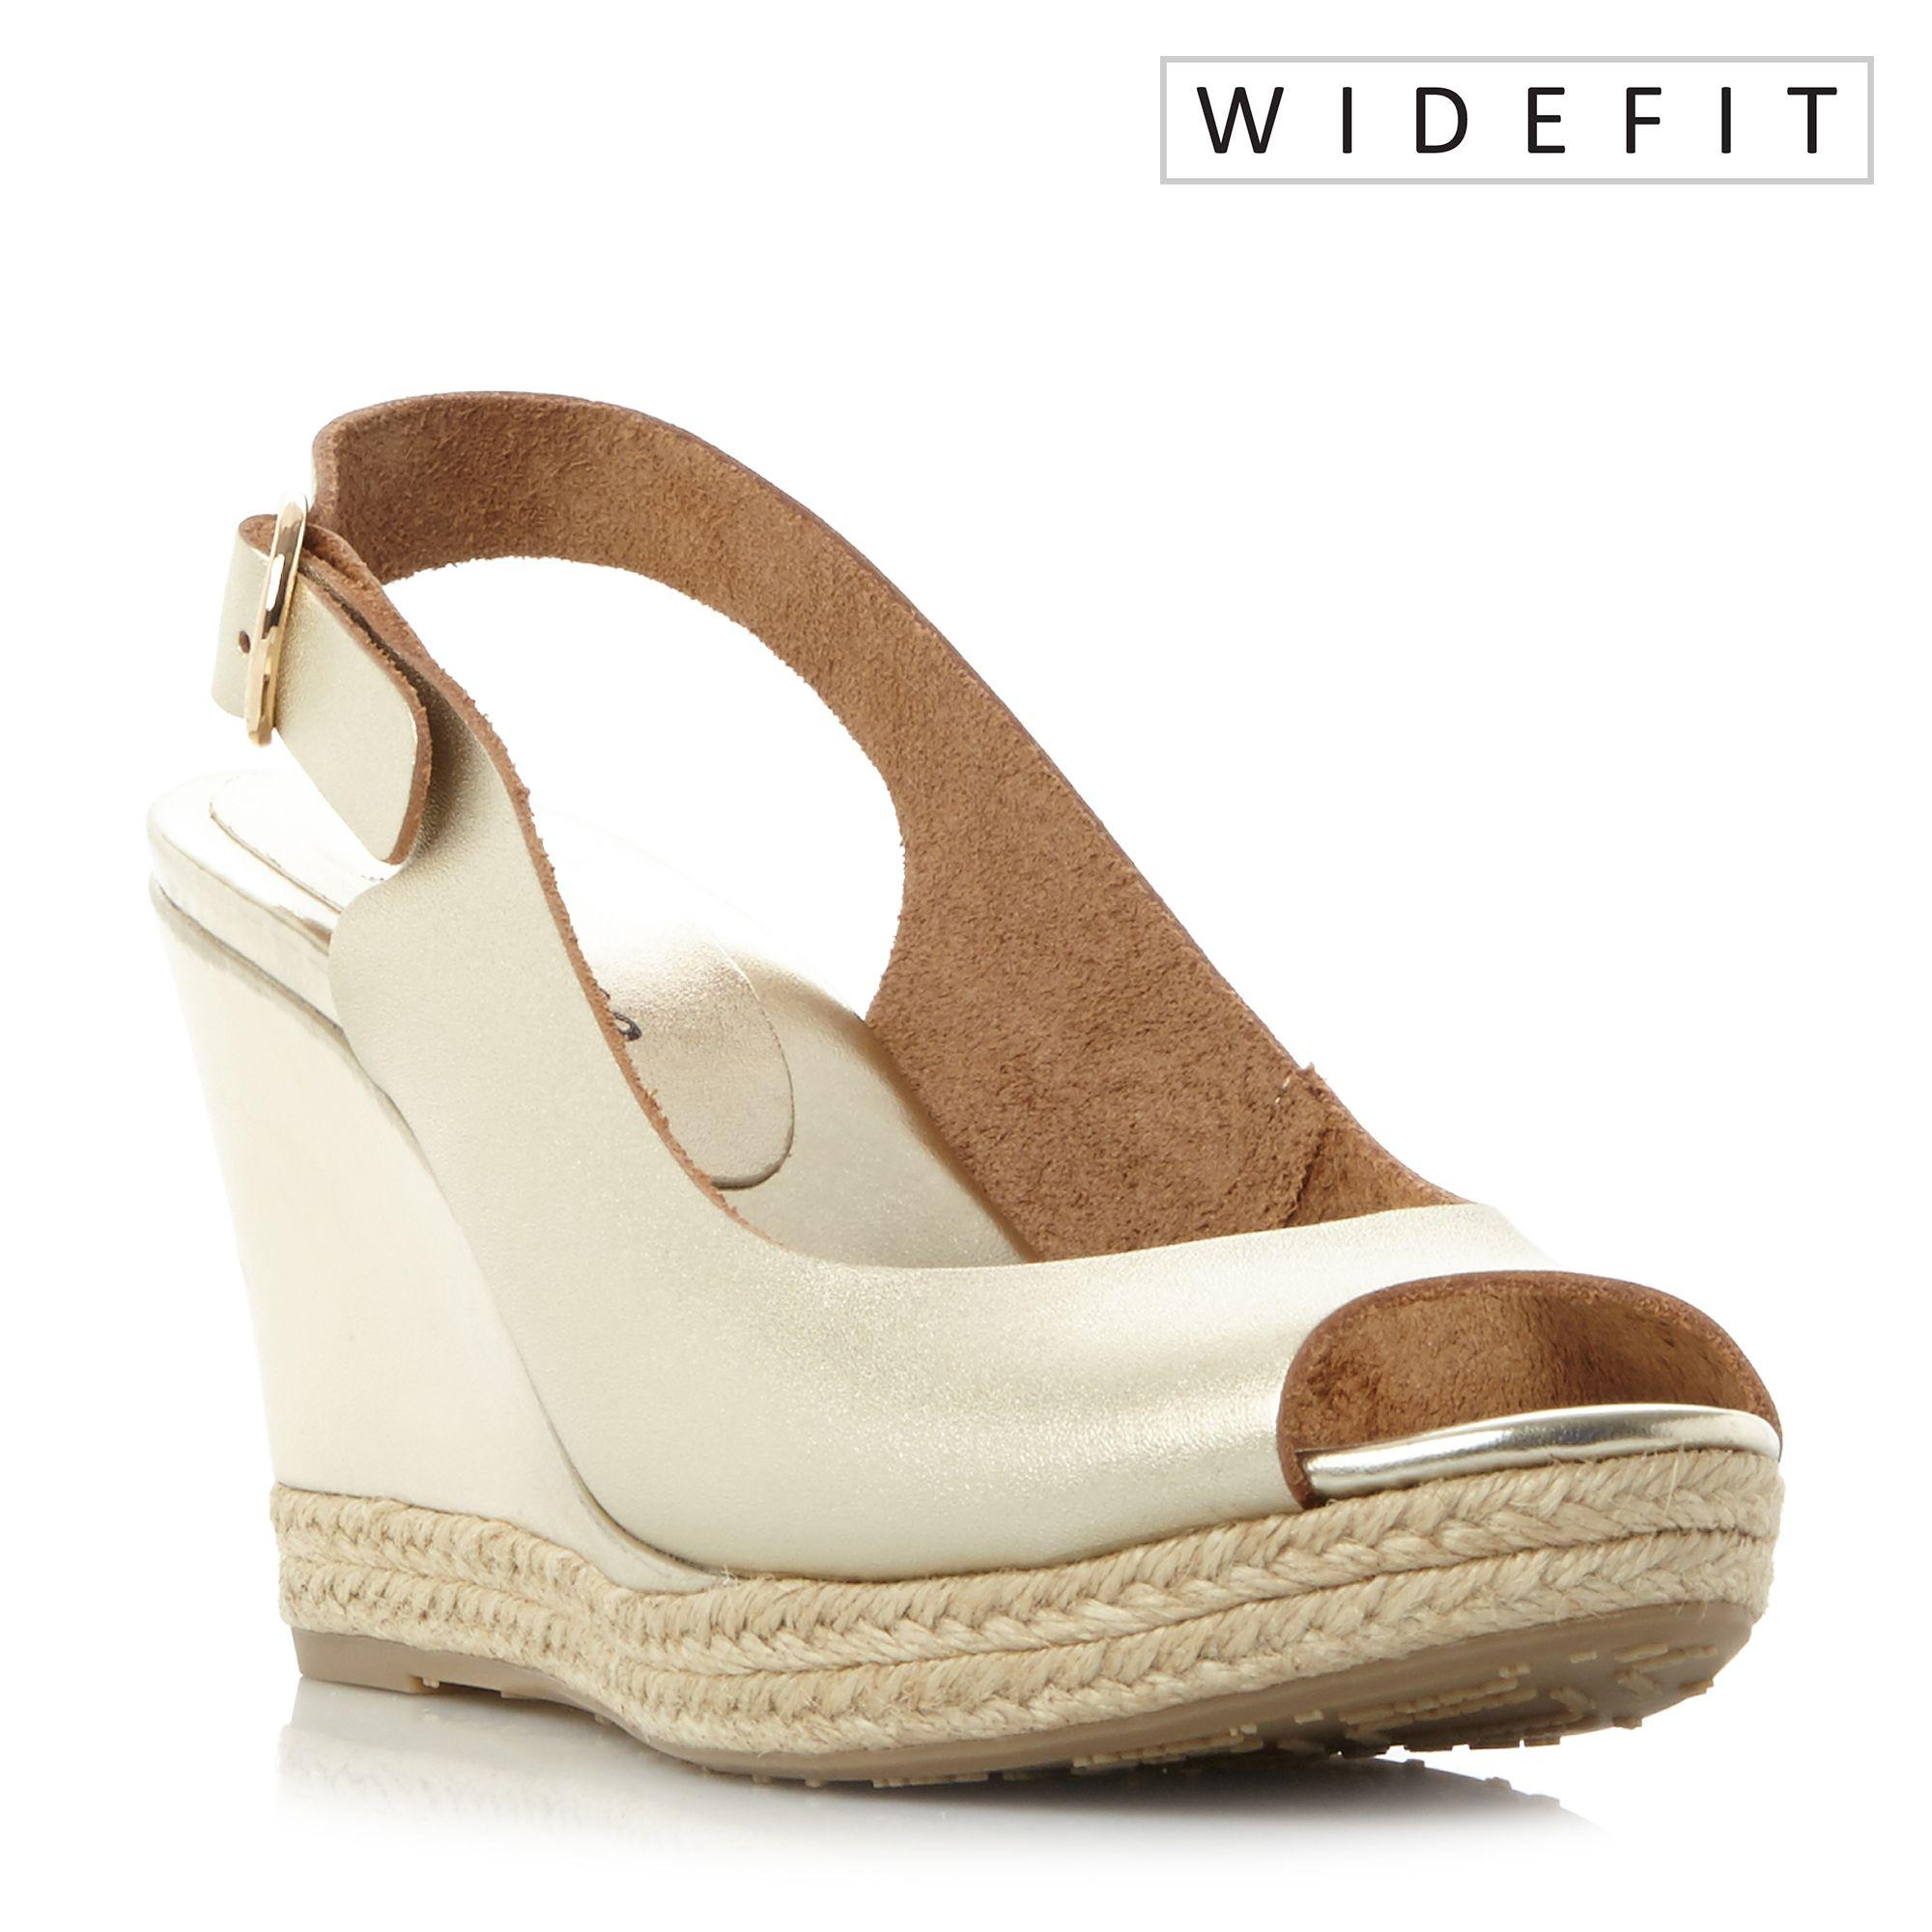 Wide Fit Shoes House Of Fraser